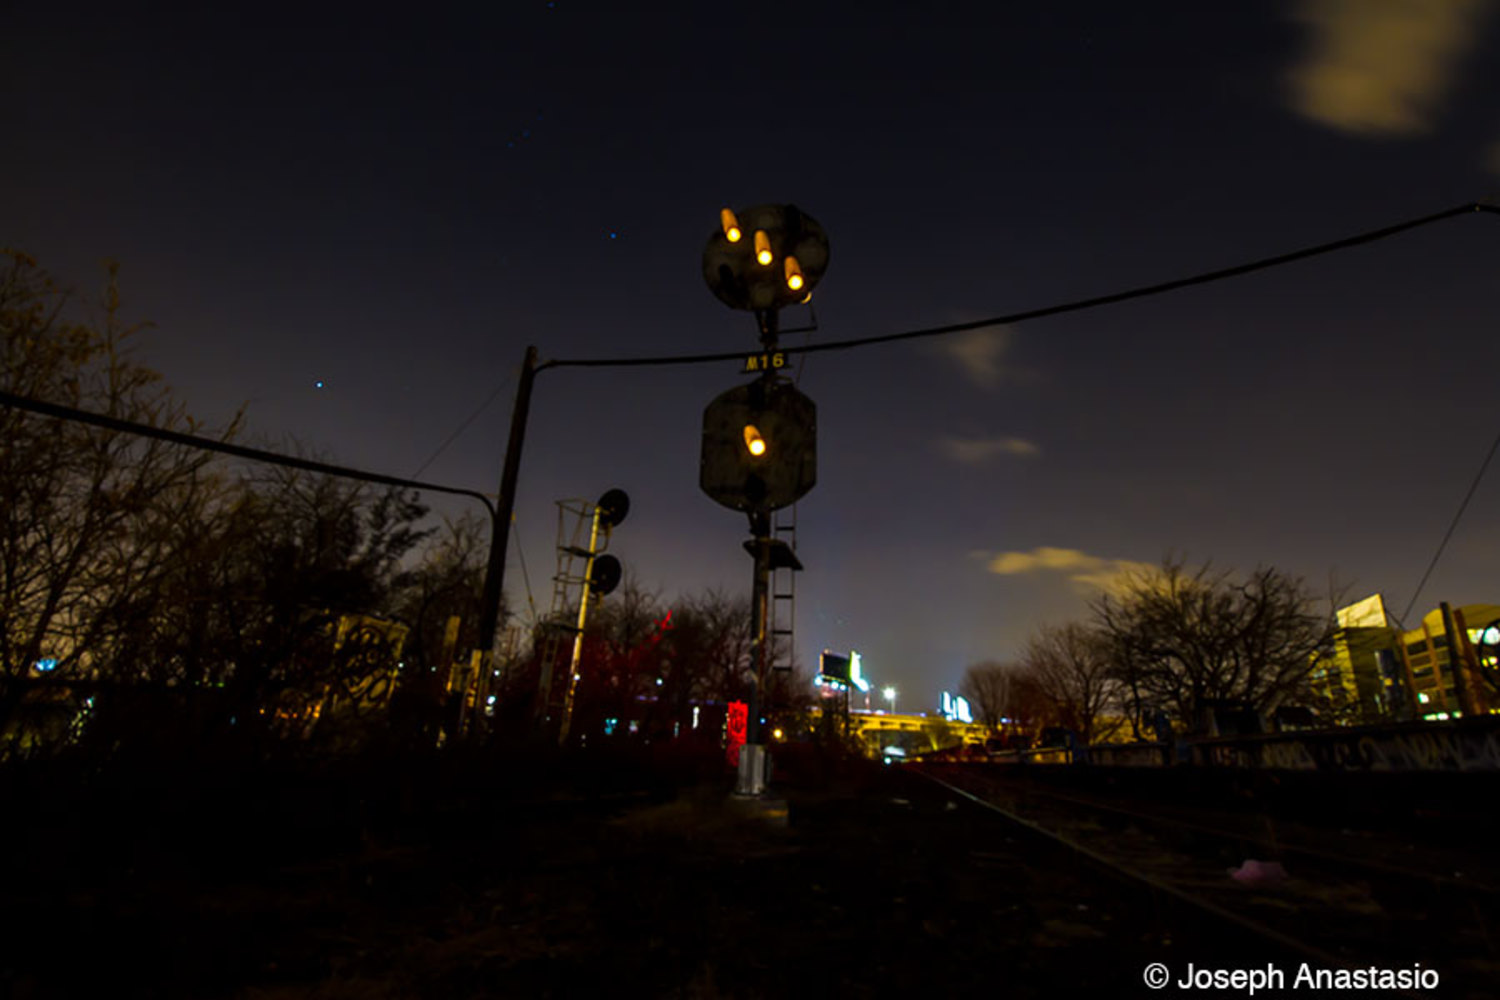 Original LIRR position signal still lit and in place